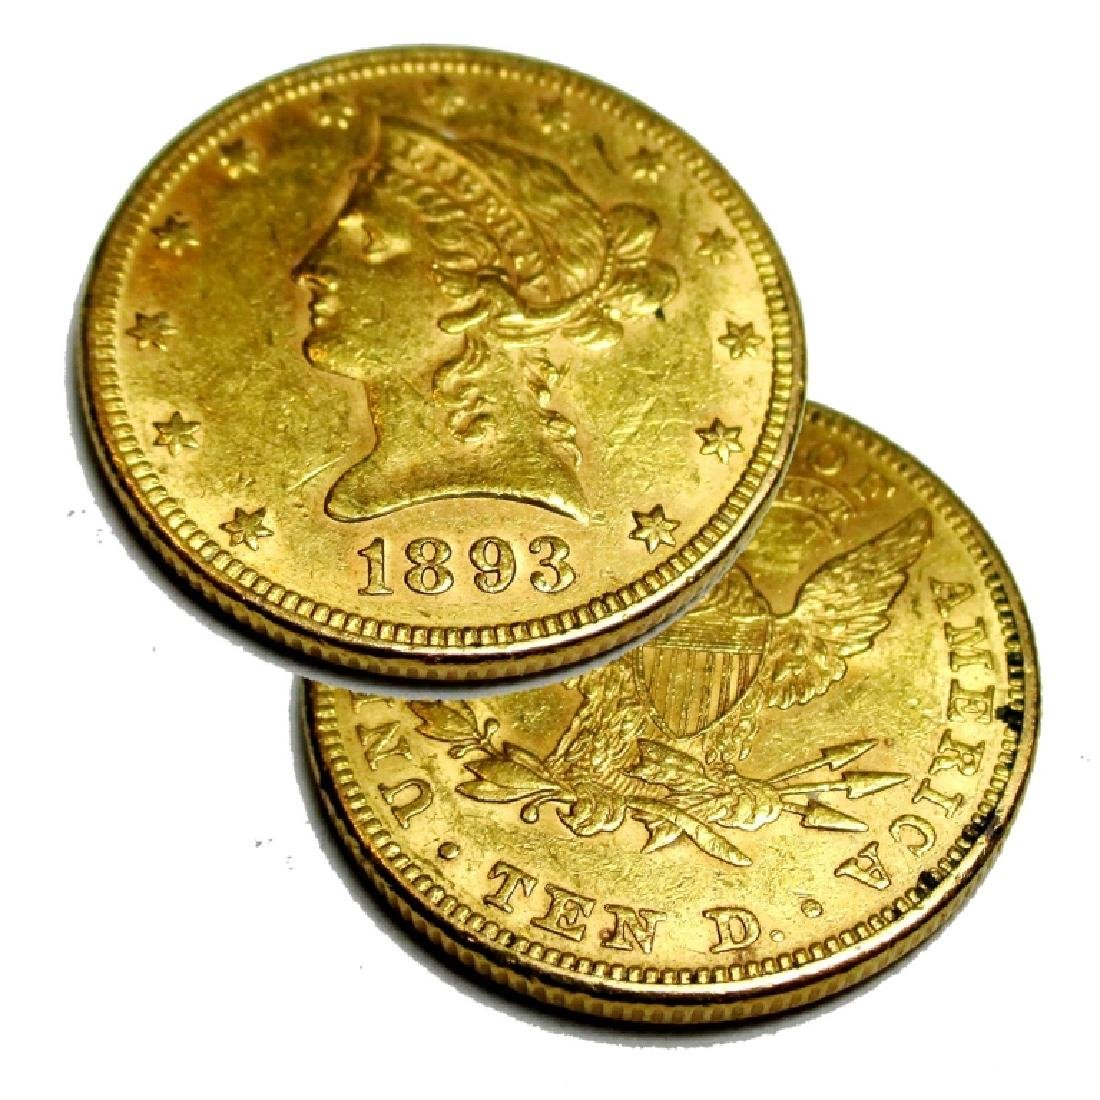 1893 AU Grade $10 Gold Liberty Head Coin